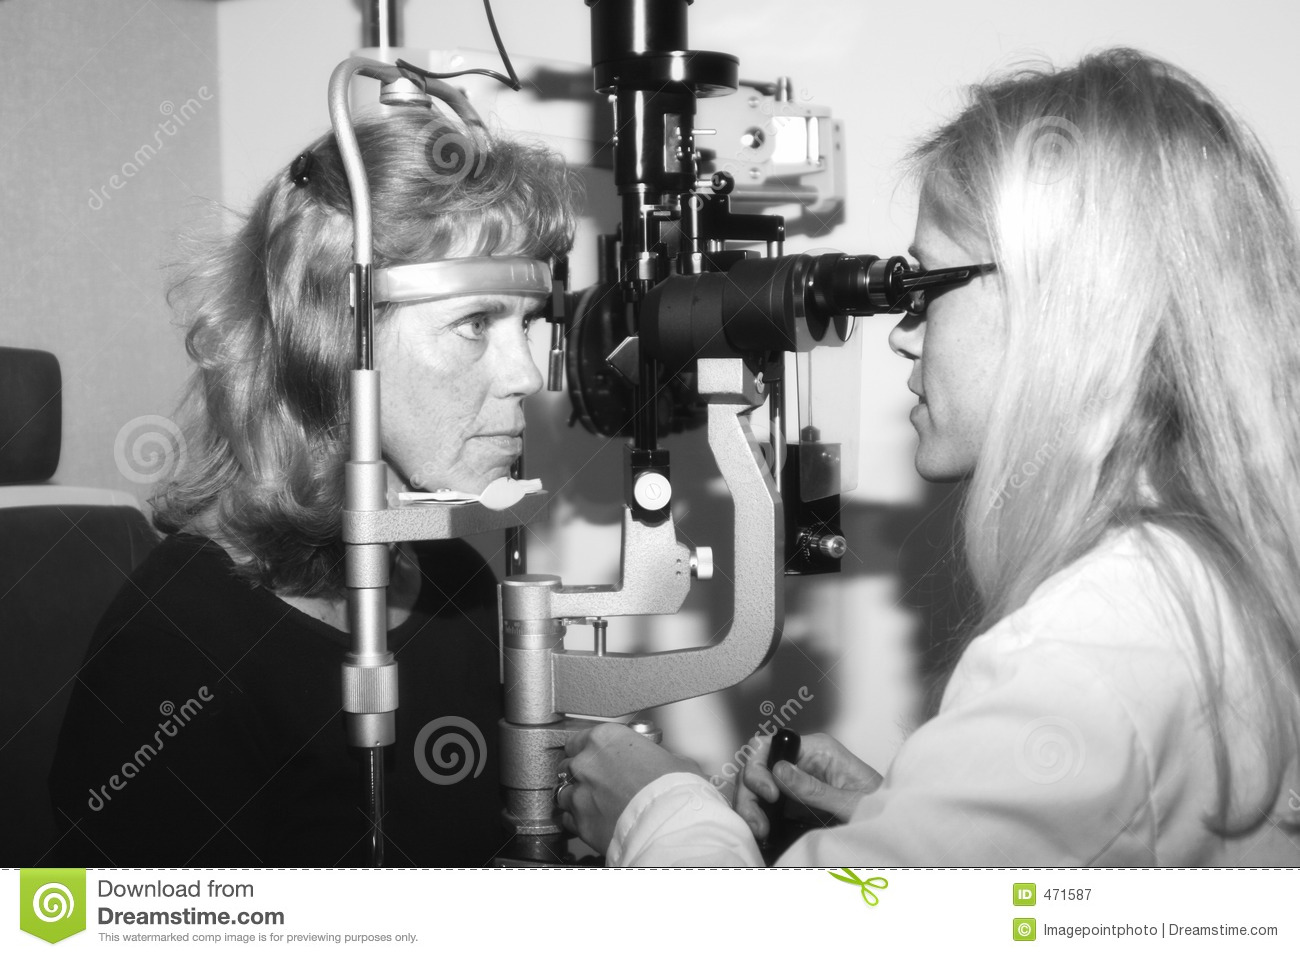 Download Ophthalmologist Conducting An Eye Examination Stock Image - Image of health, optometrist: 471587